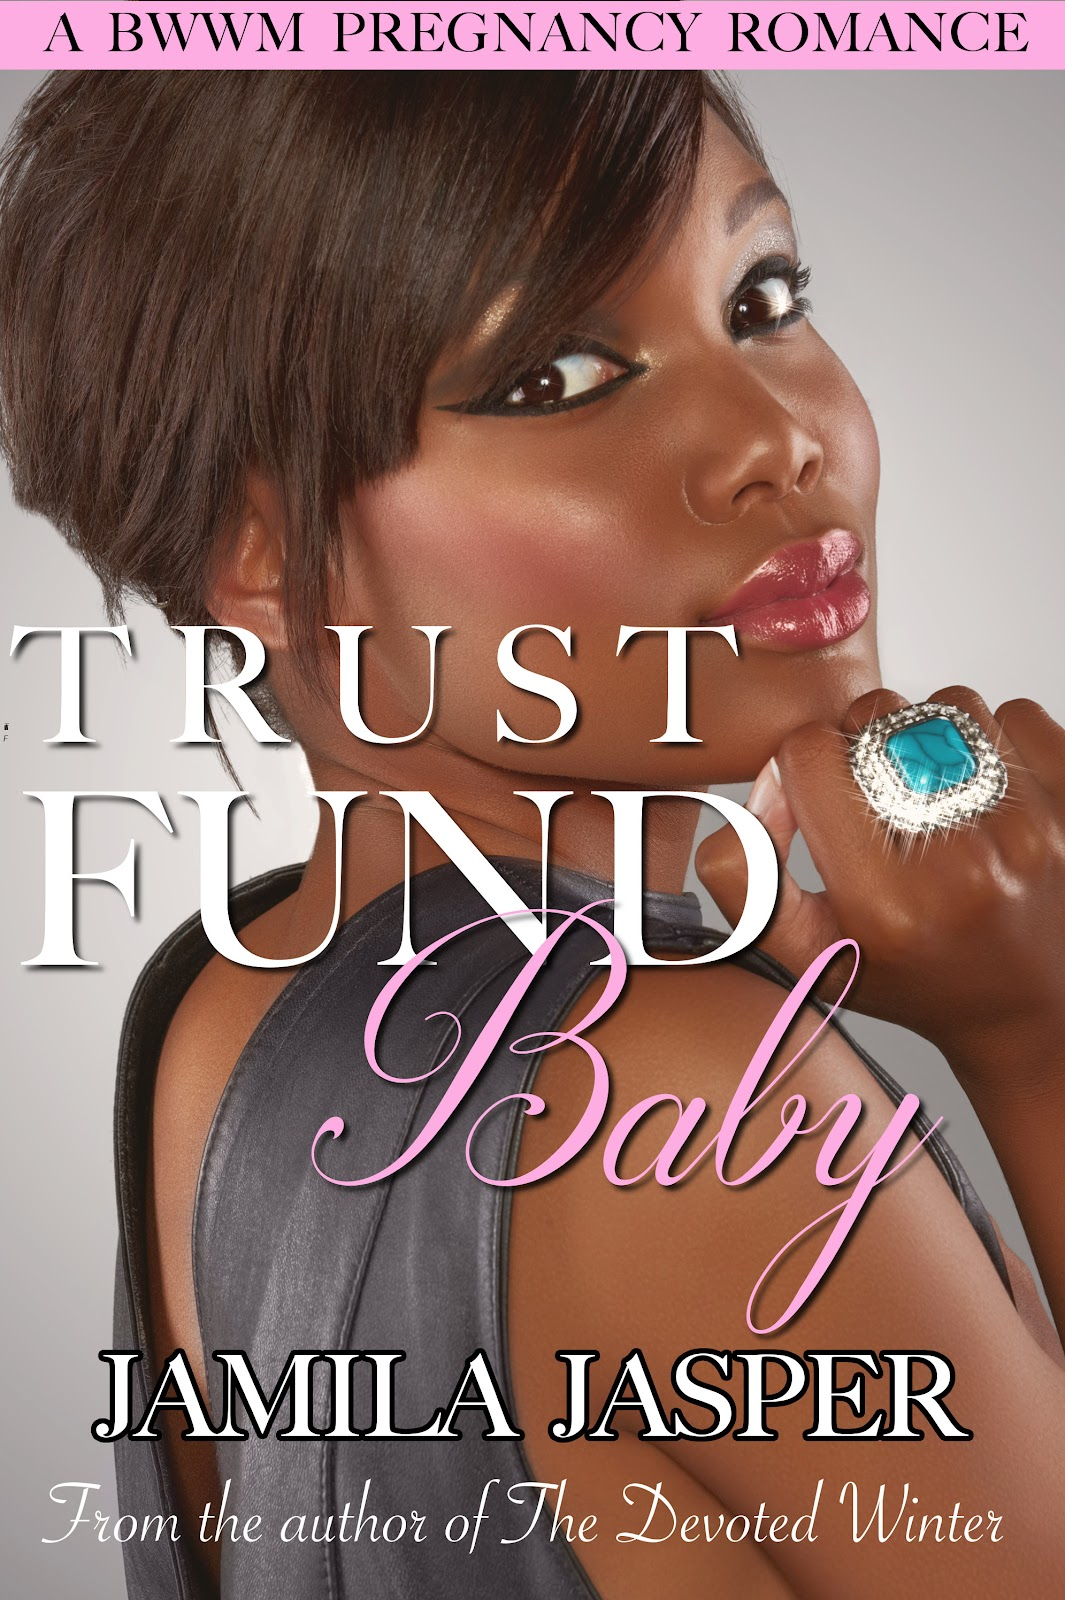 Romance Novel Excerpts: Trust Fund Baby Jamila Jasper